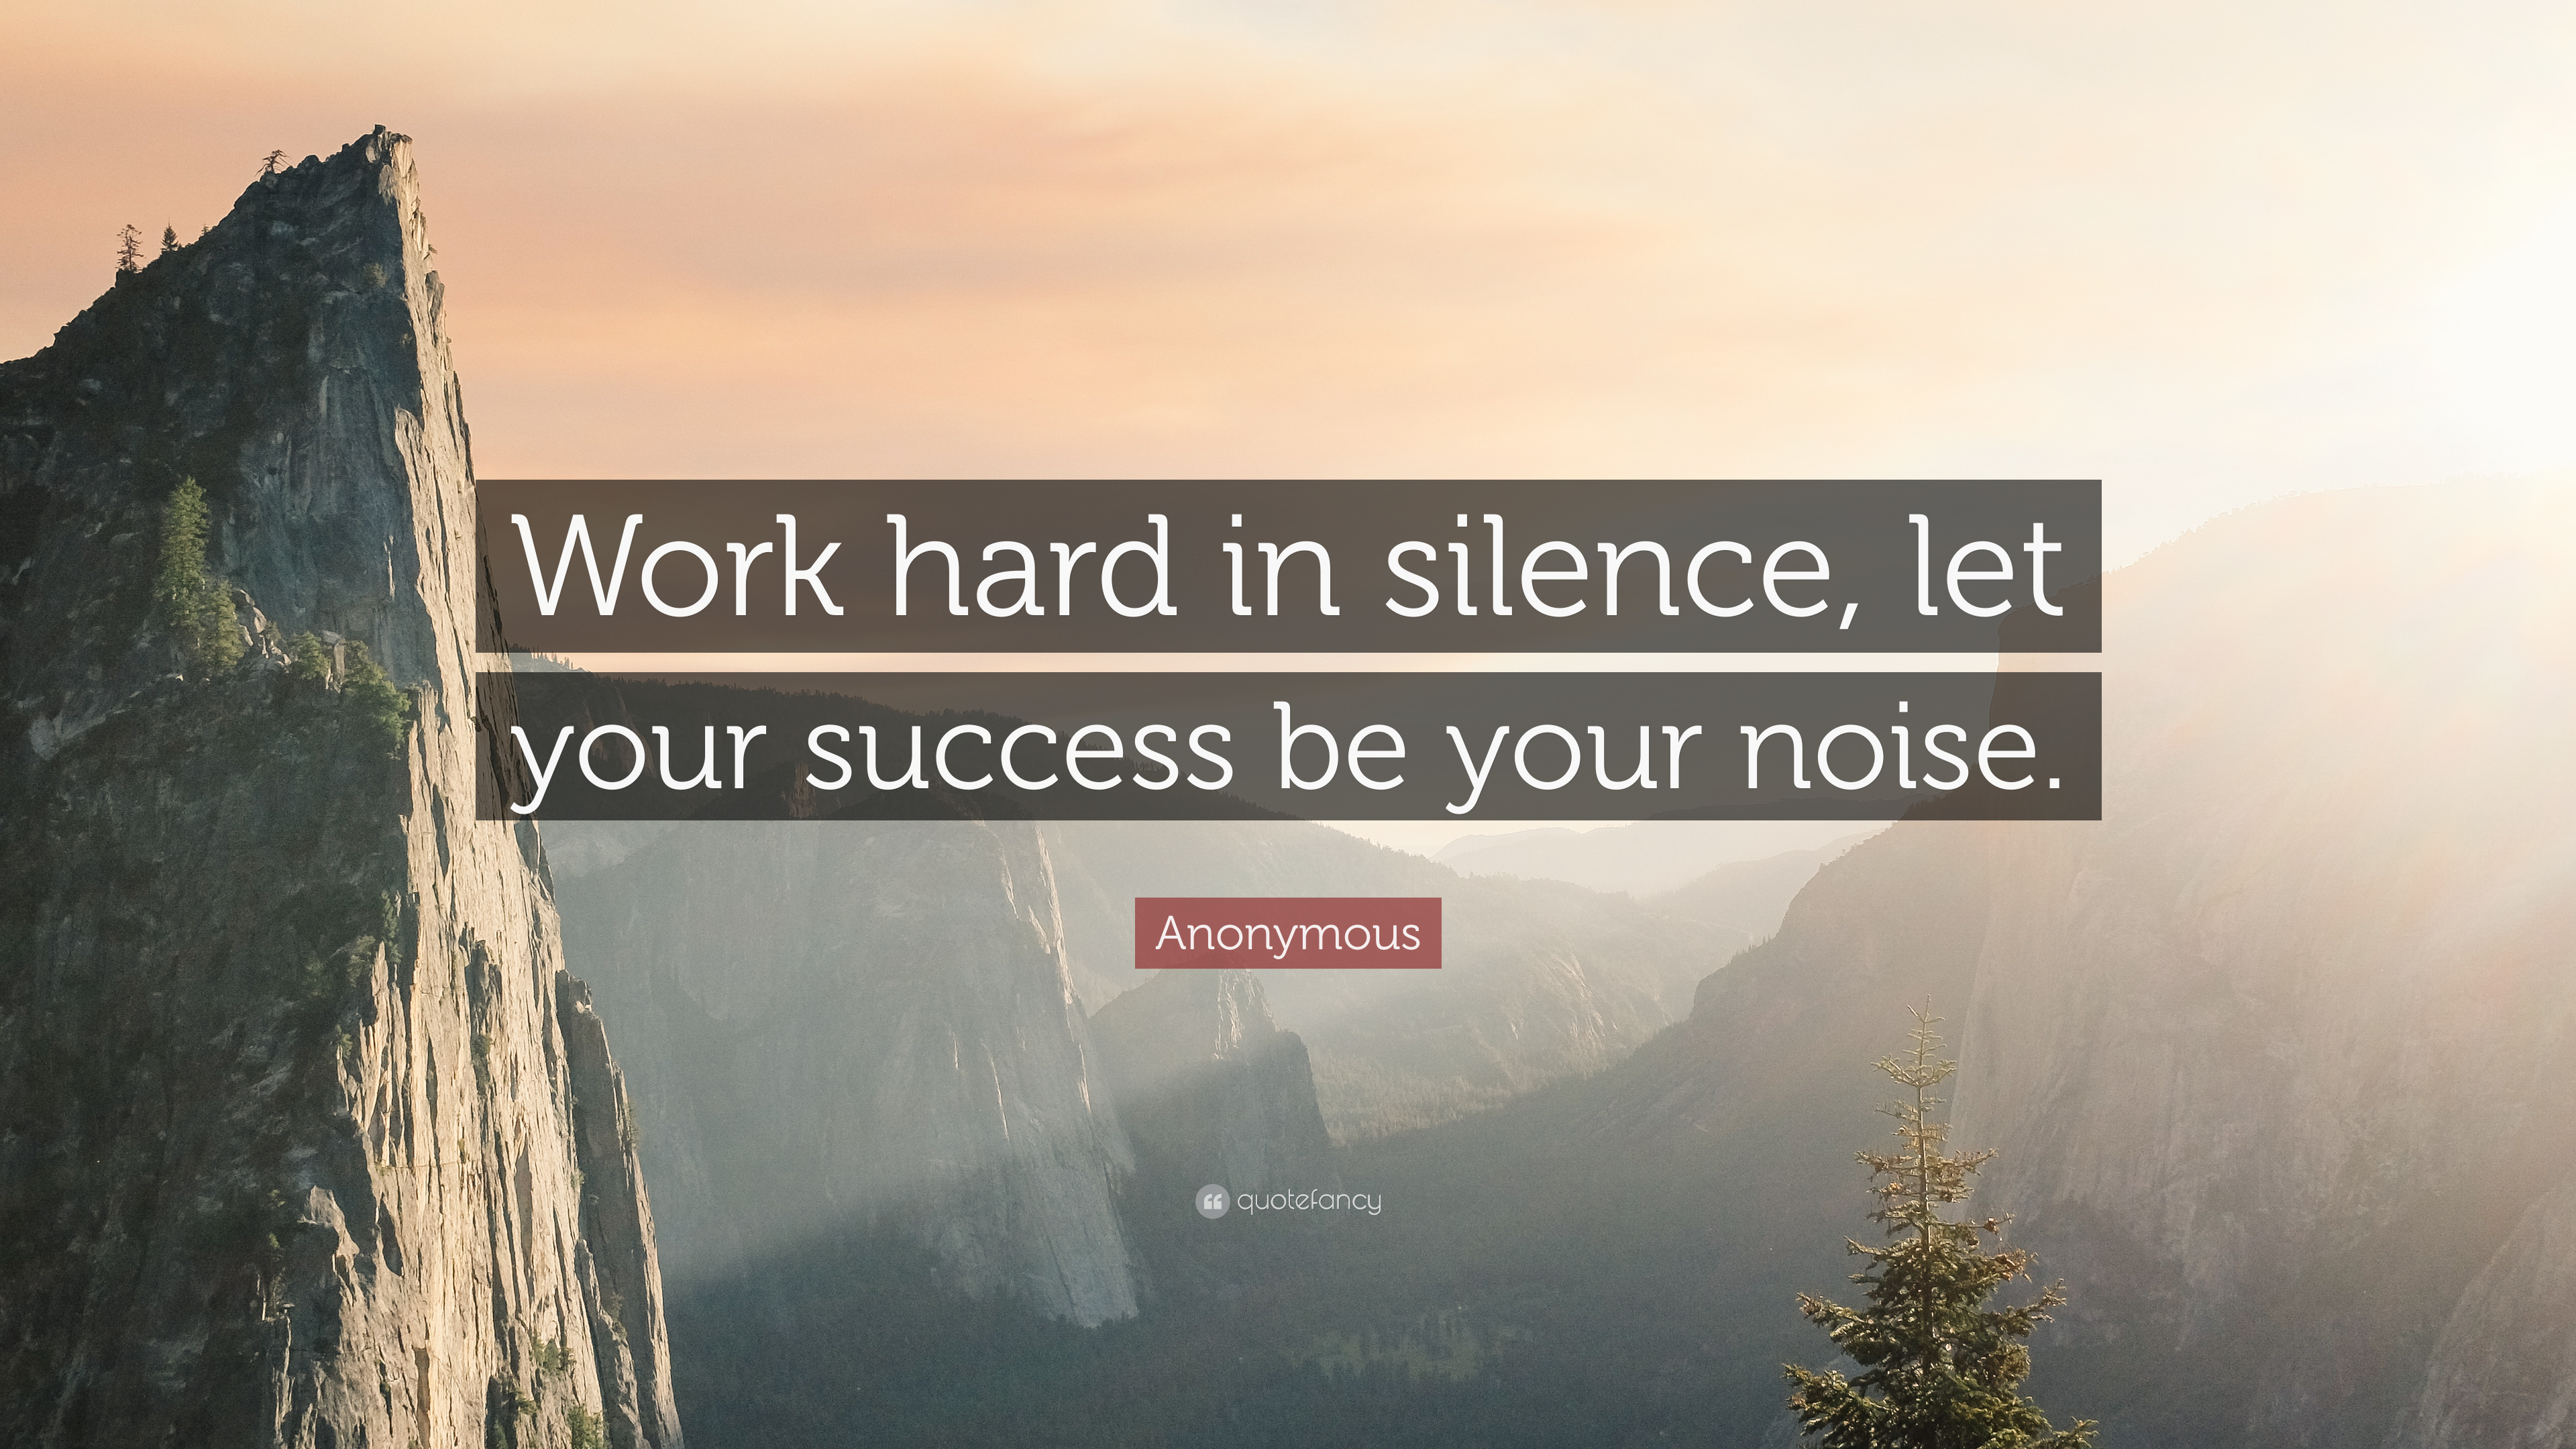 Eleanor Roosevelt Quote Wallpaper Consent Frank Ocean Quote Work Hard In Silence Let Your Success